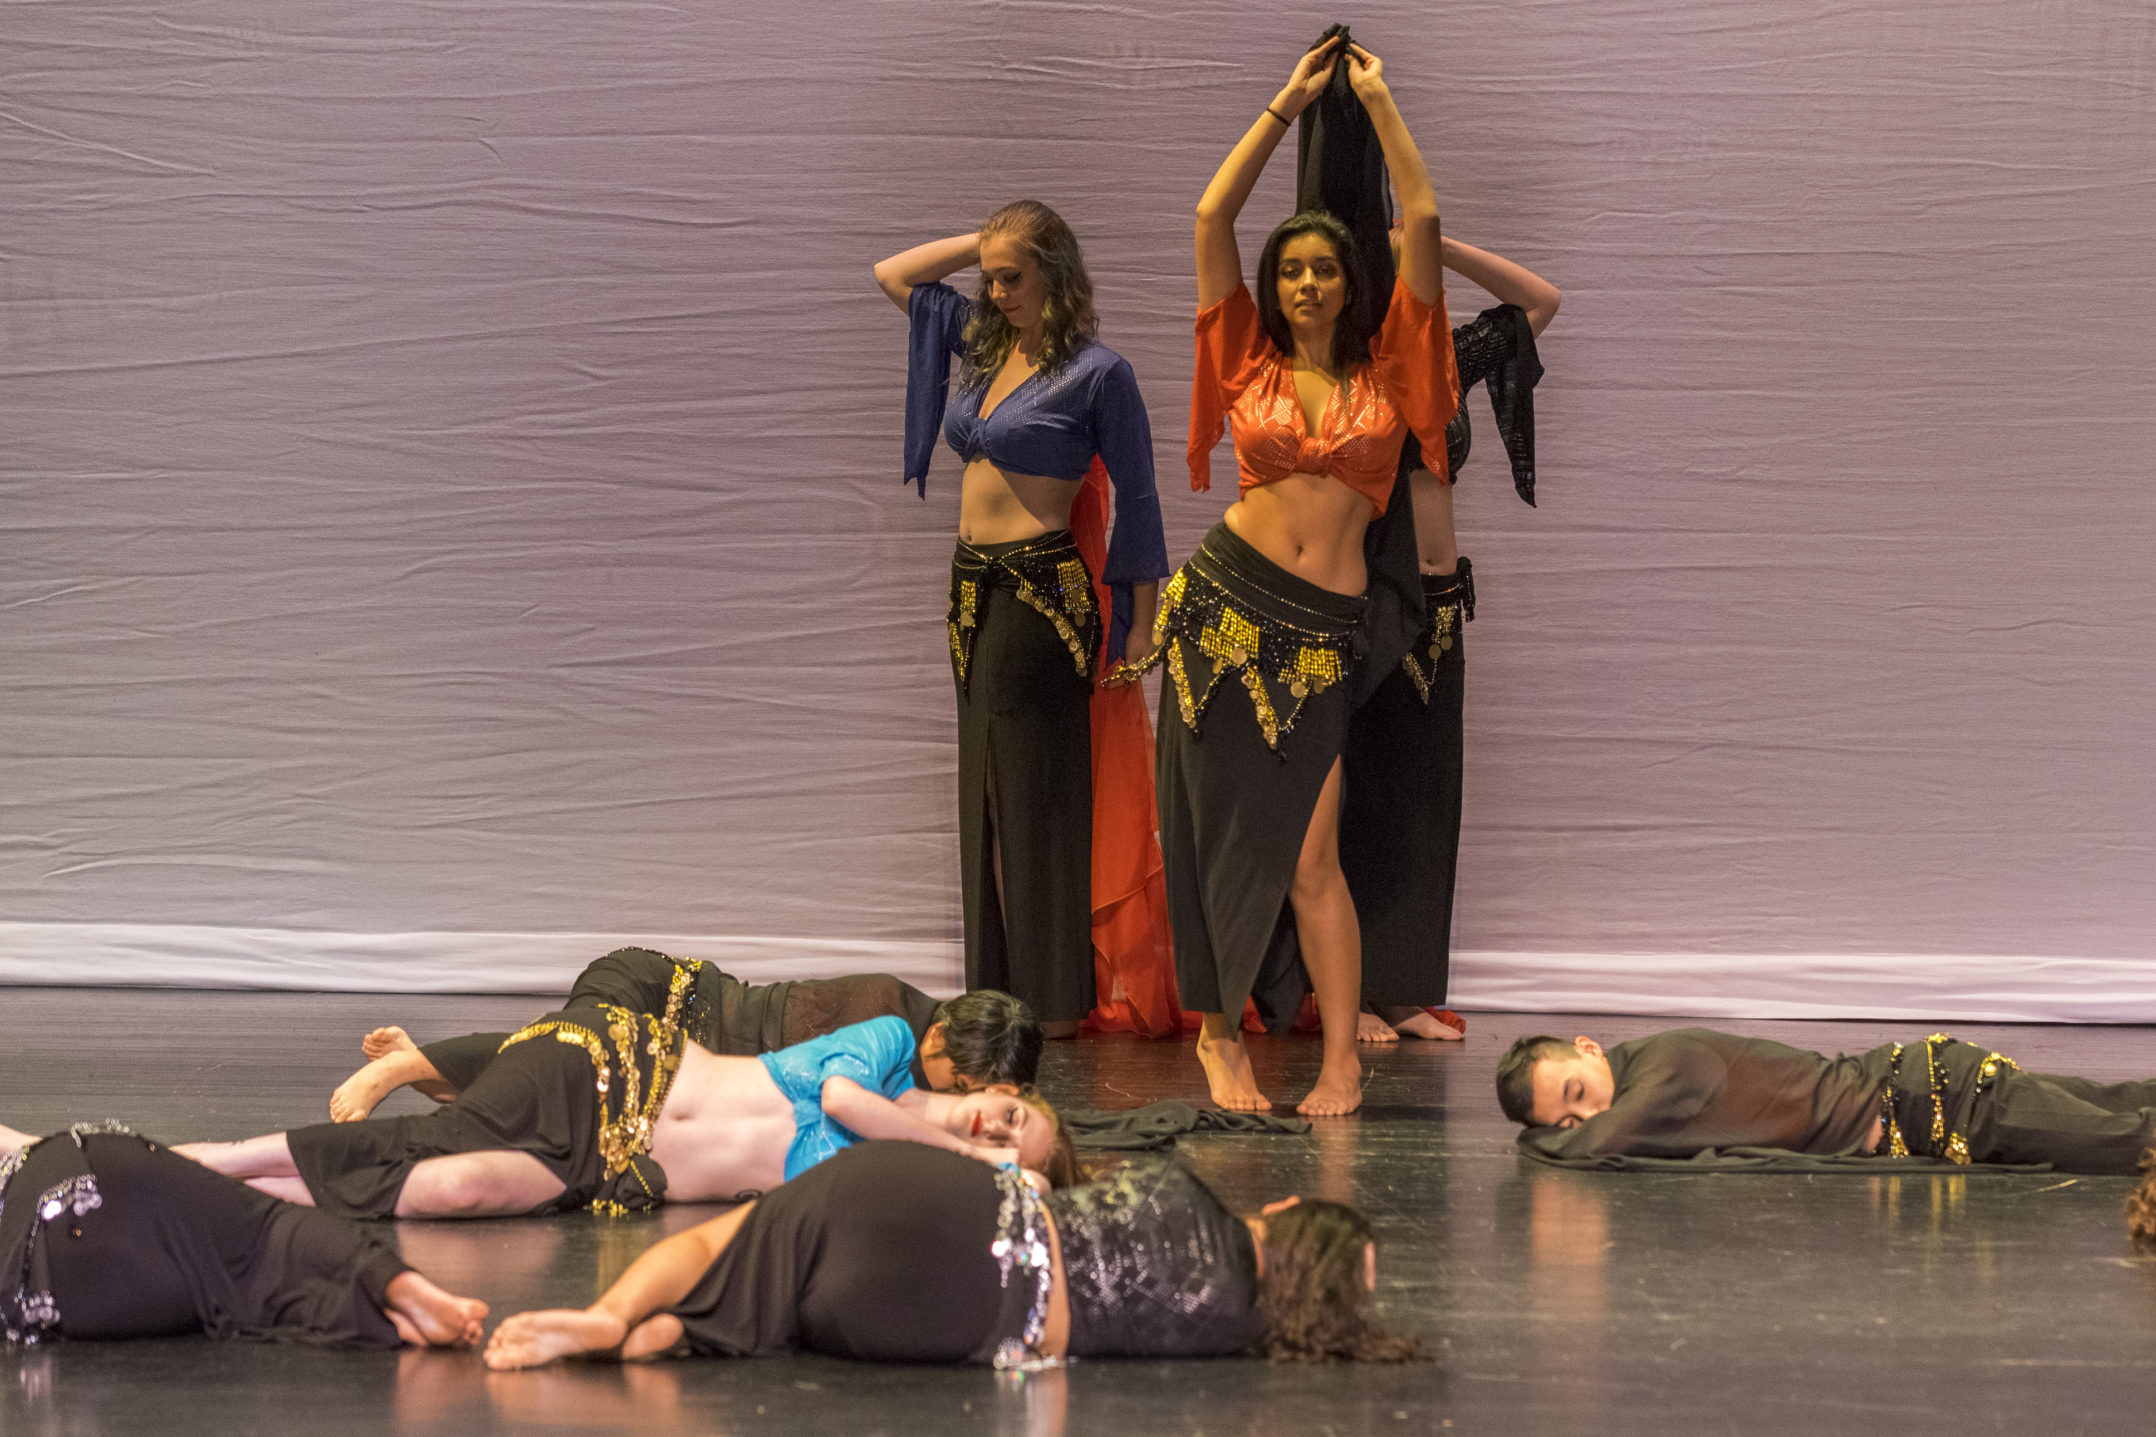 Members of Belly Dance perform during FUSION on Thursday Nov. 9, 2017, at Zoellner Arts Center. The multicultural event was the kickoff to Lehigh's annual International Week. (Roshan Giyanani/B&W Staff)